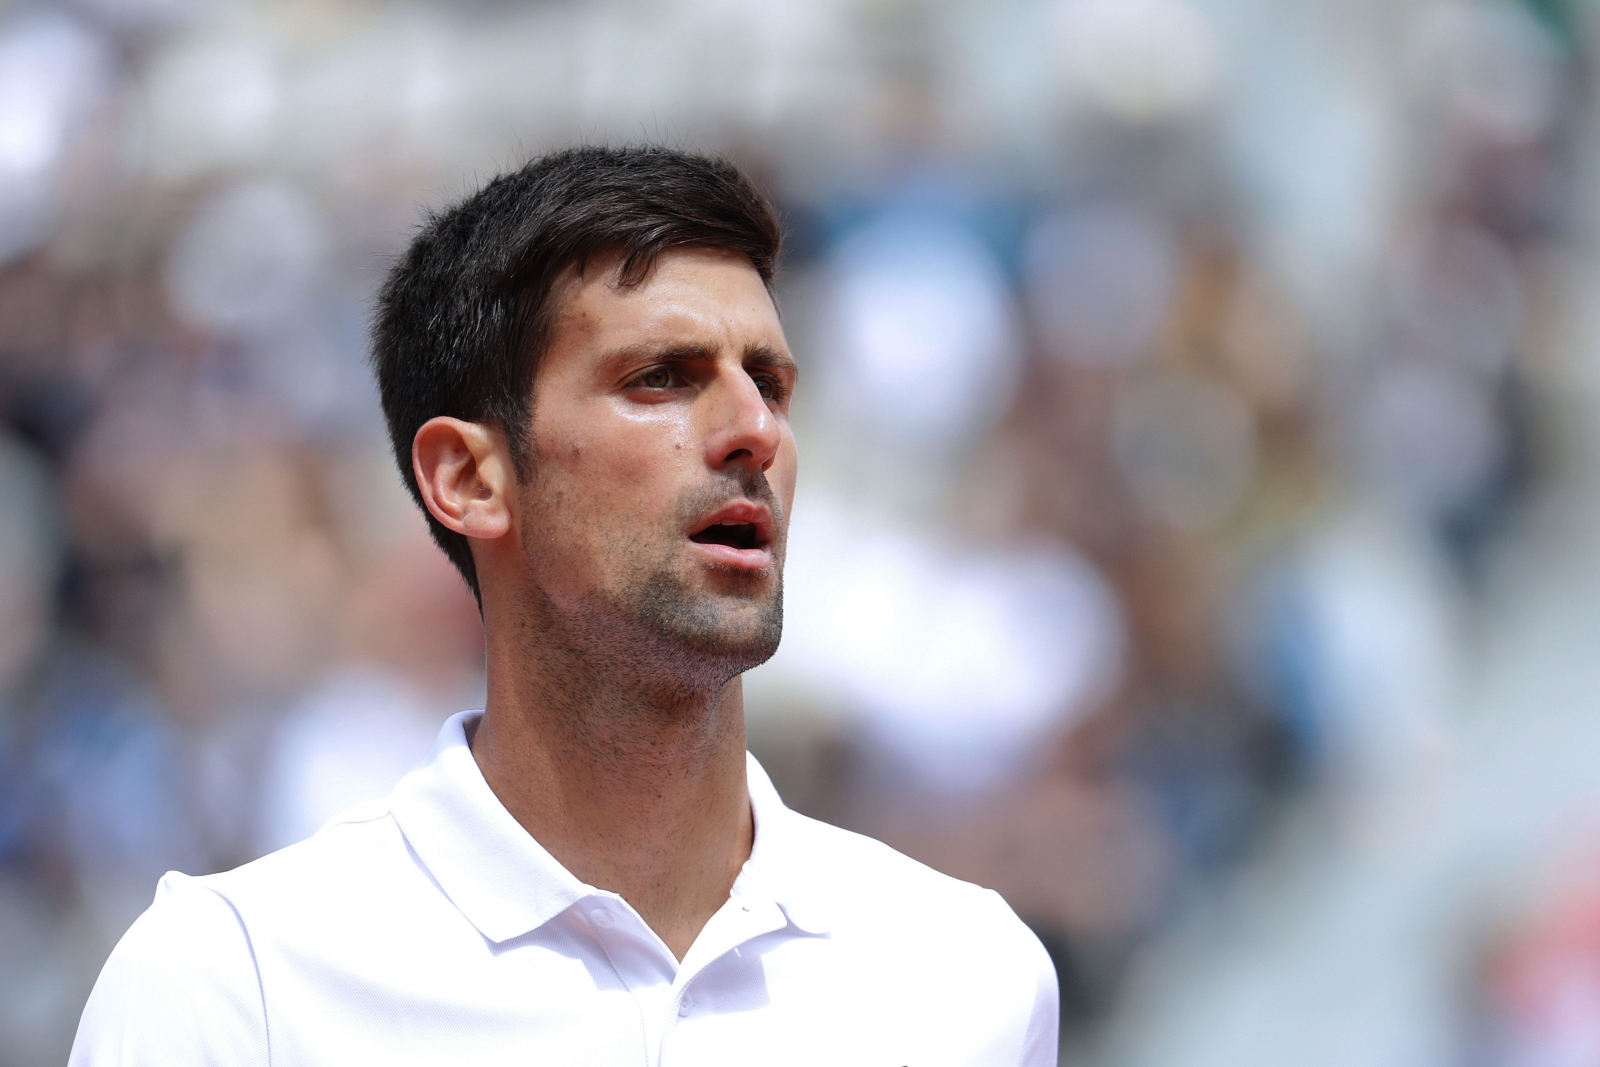 2016 champ Novak Djokovic in 'whole new situation' after French Open loss